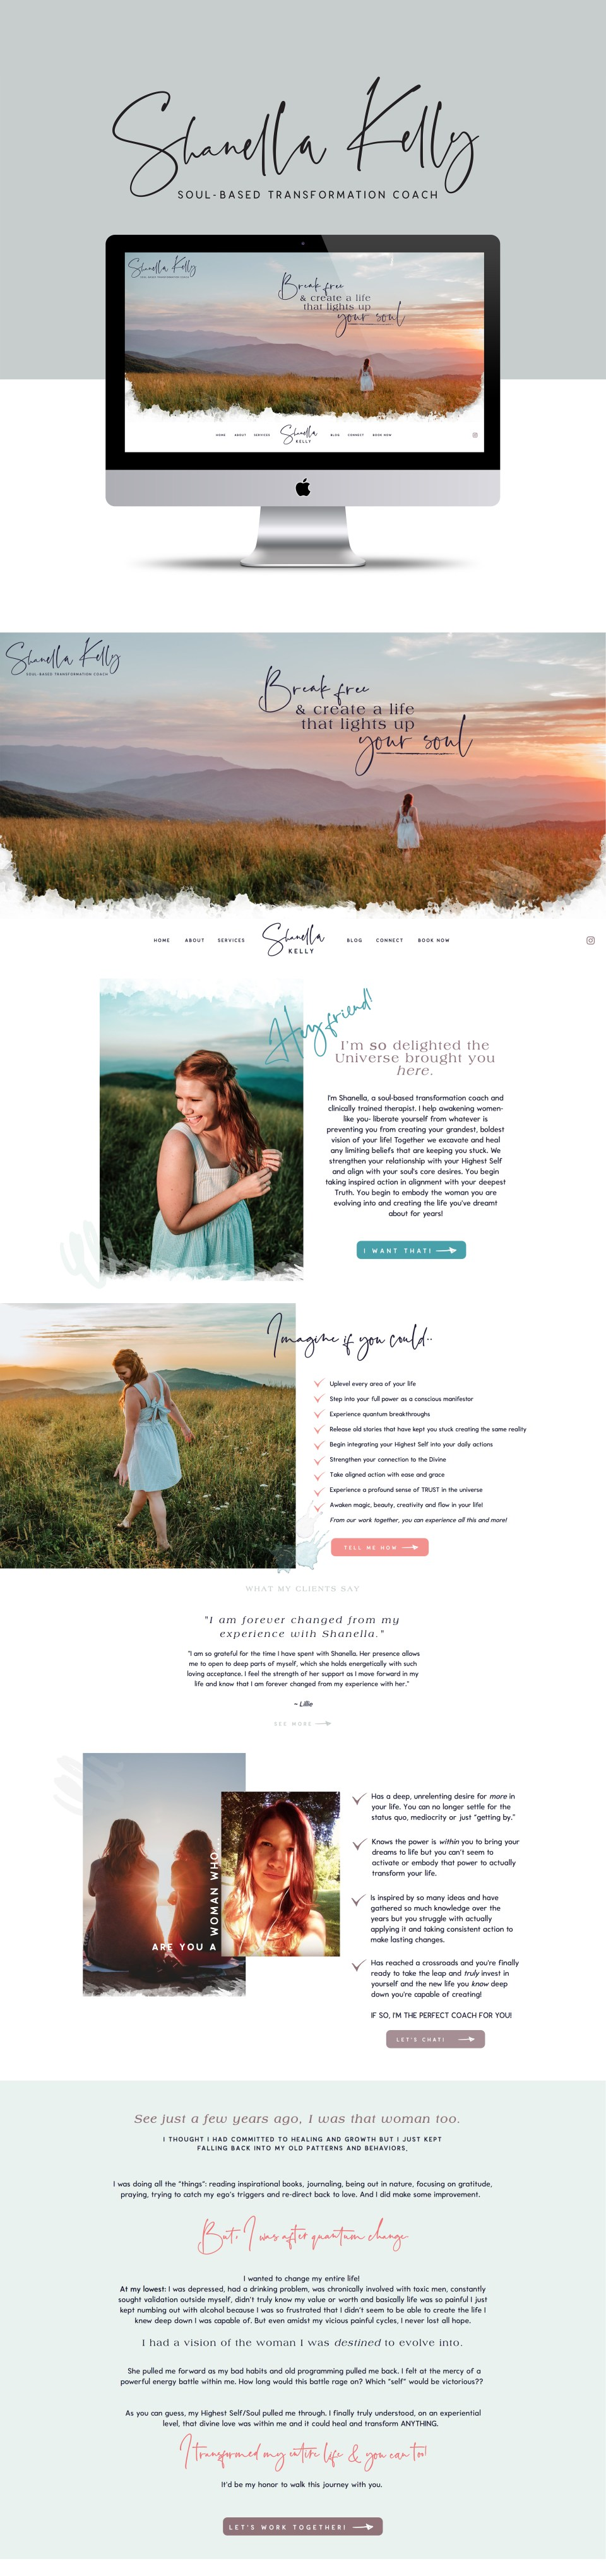 Showit5 websites for life coaches - gorgeous, whimsical, fairtale designs